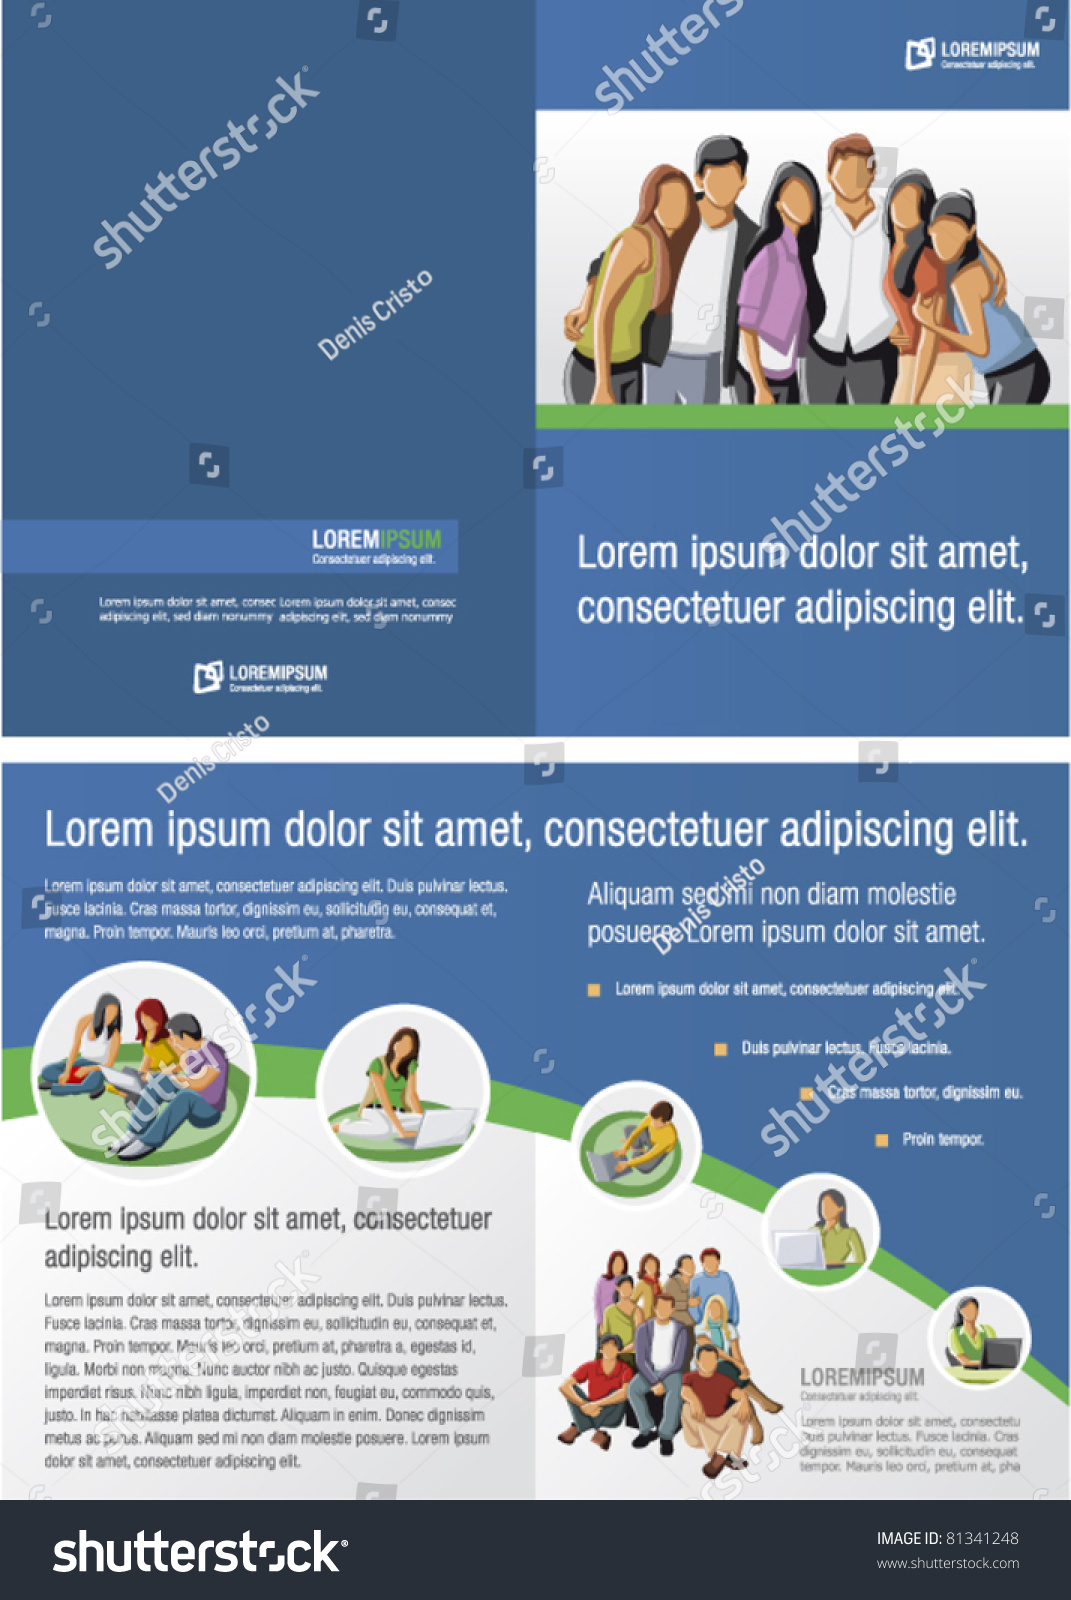 student brochure template - blue green template advertising brochure students stock